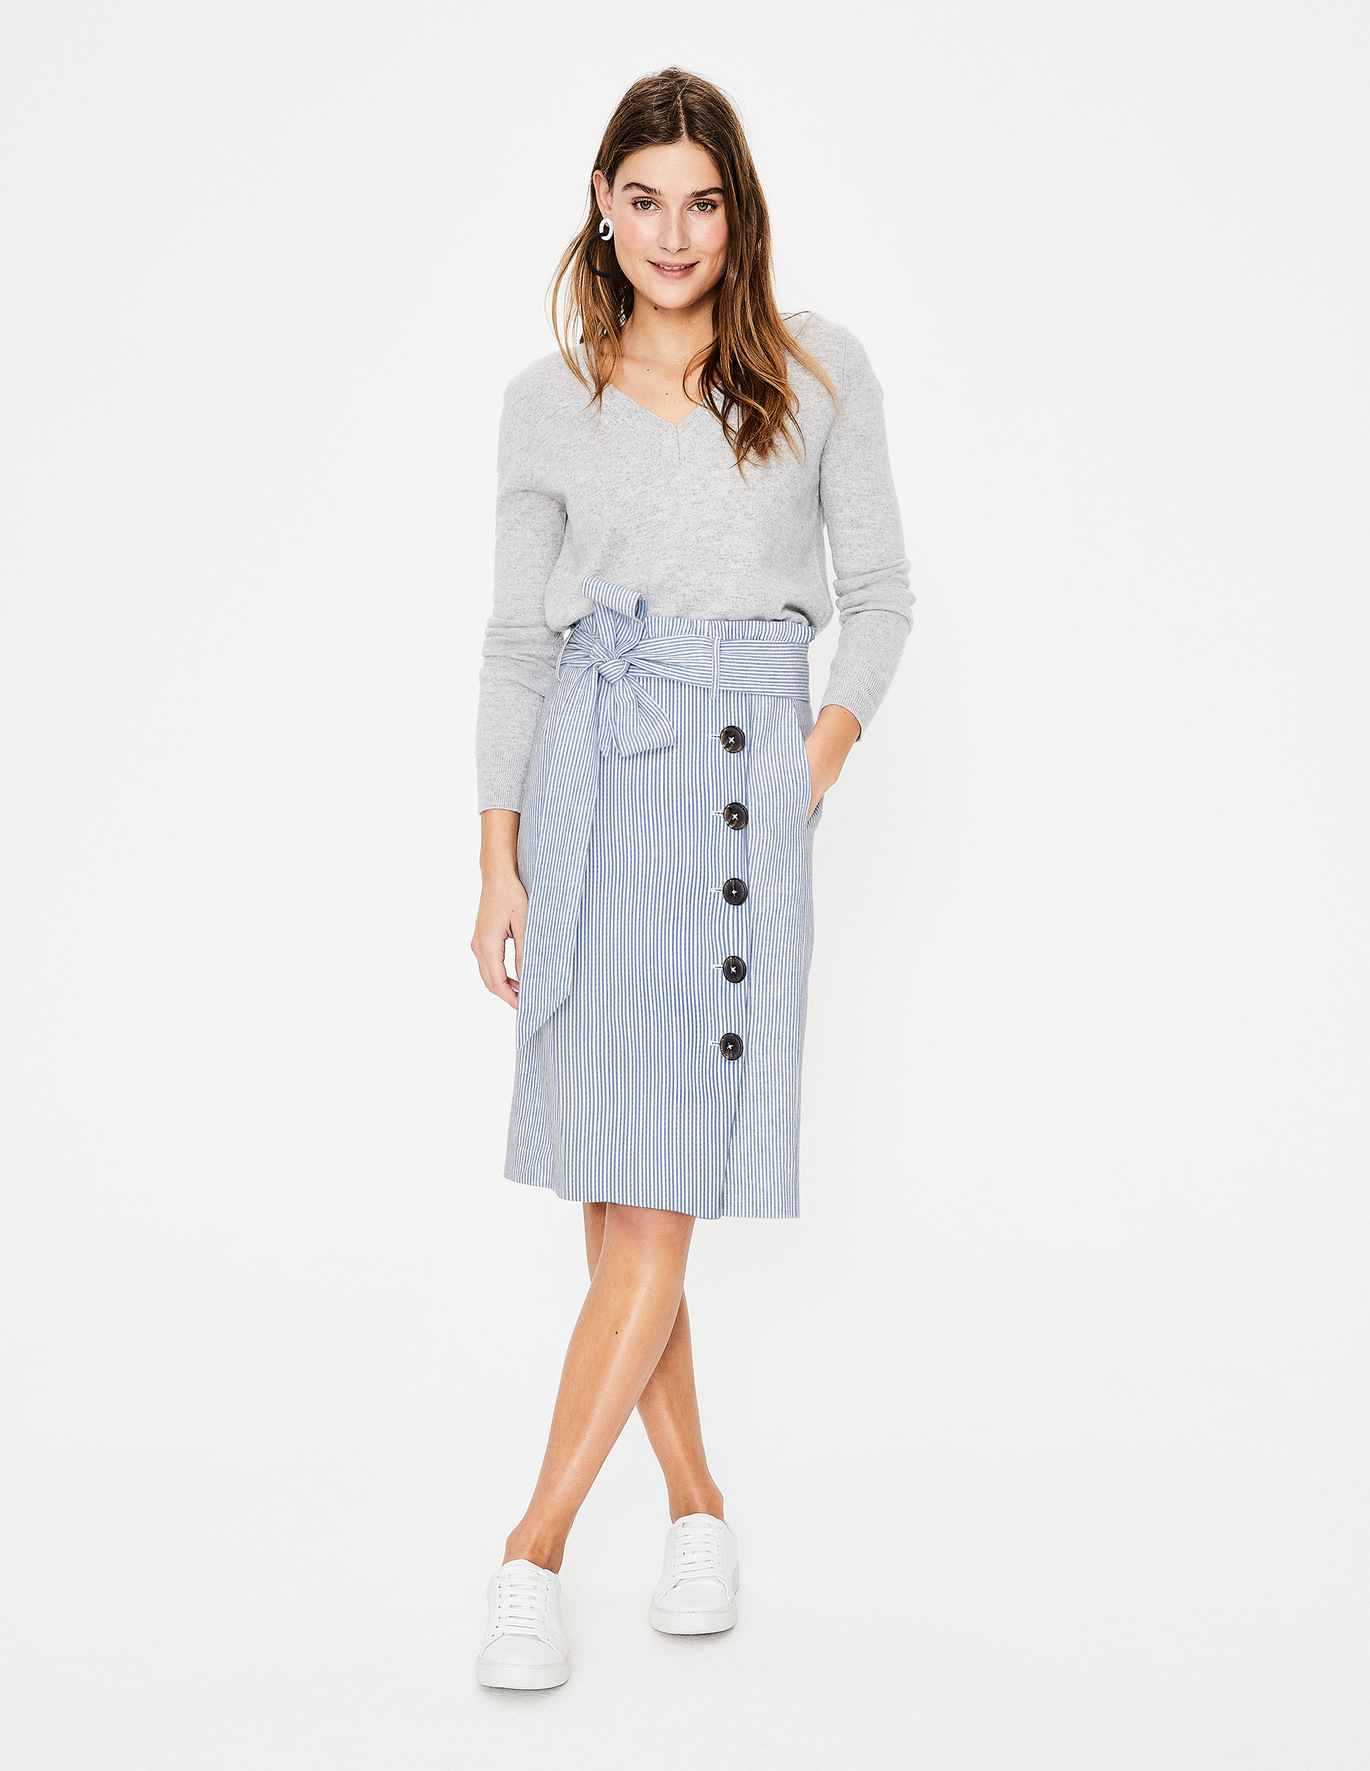 Boden Leonora Skirt  Just an easy, on-the-go skirt! Pop it on with a simple grey tee and tenny's or dress it up with a lace blouse and wedges!